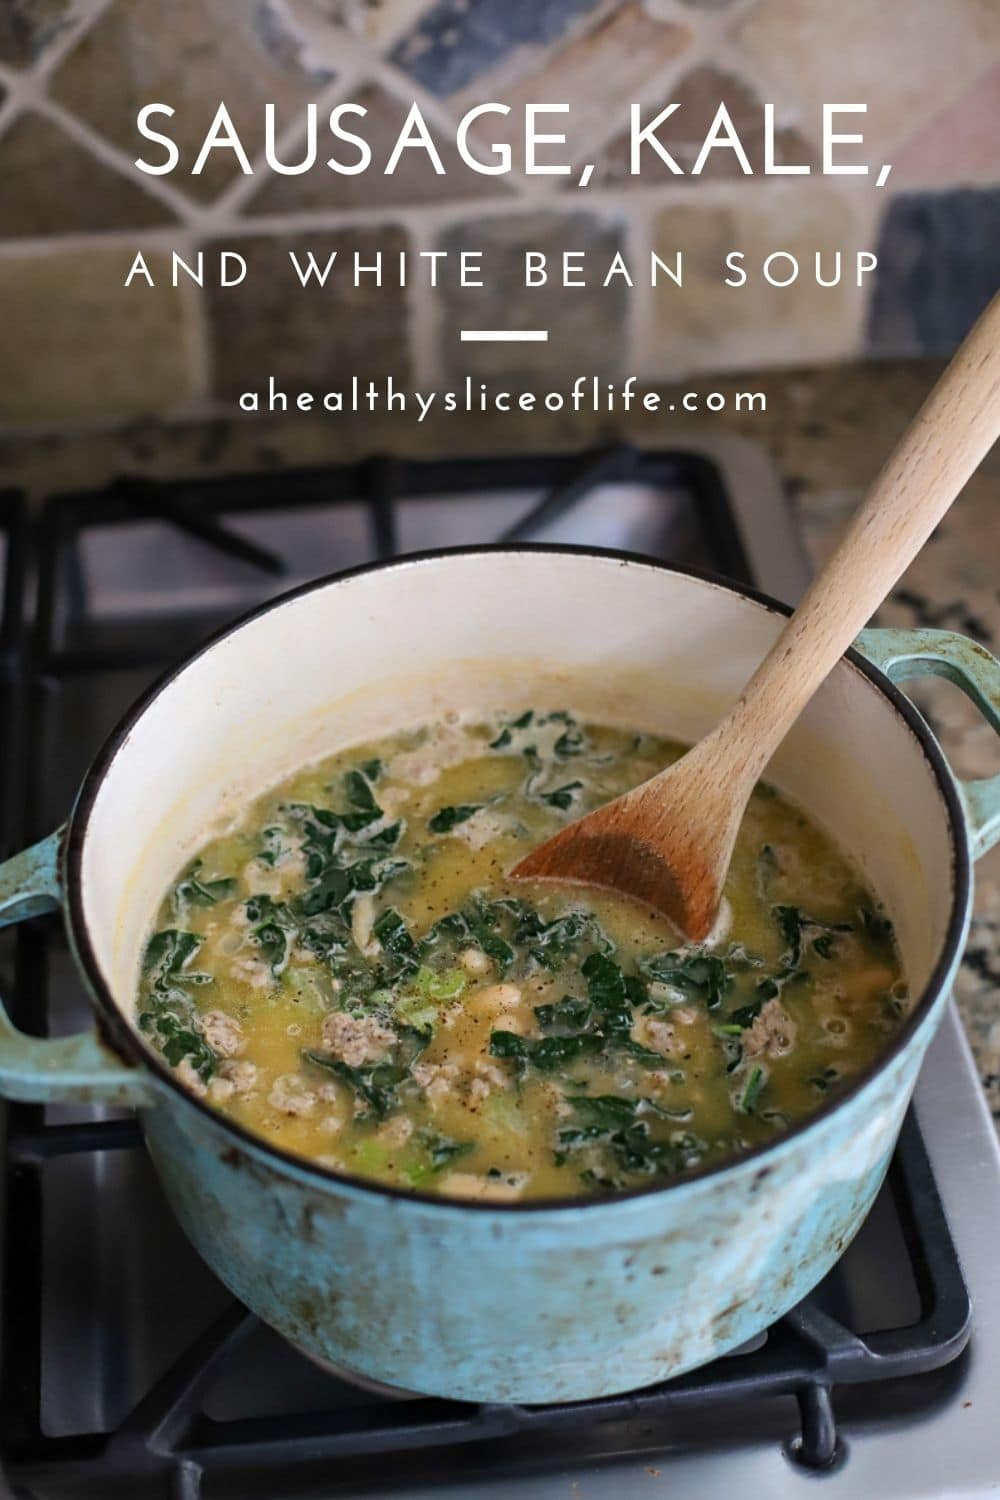 sausage kale and white bean soup recipe